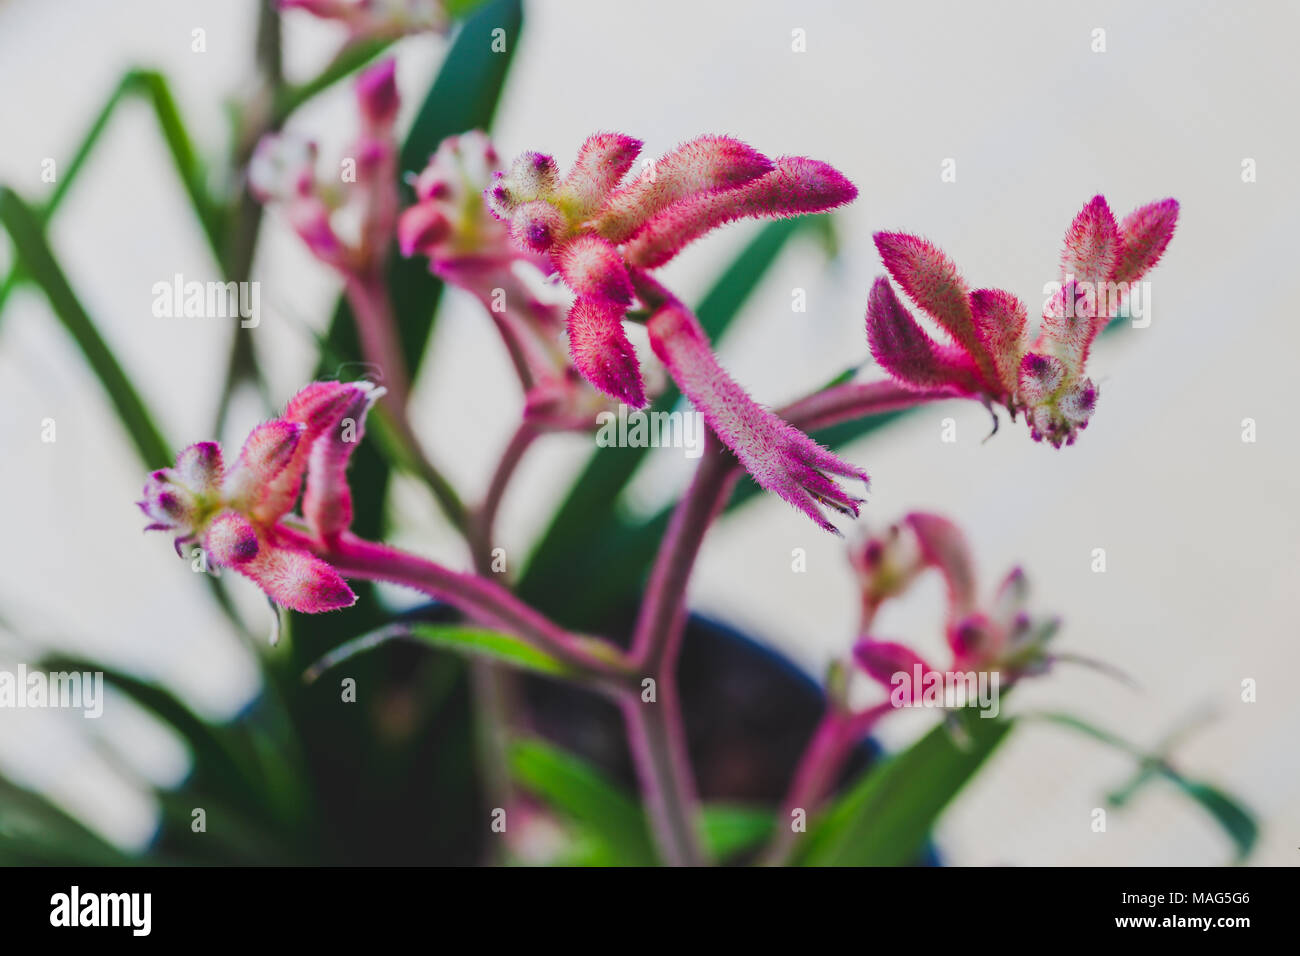 Close Up Of A Kangaroo Paw Anigozanthos Plant With Red Pink